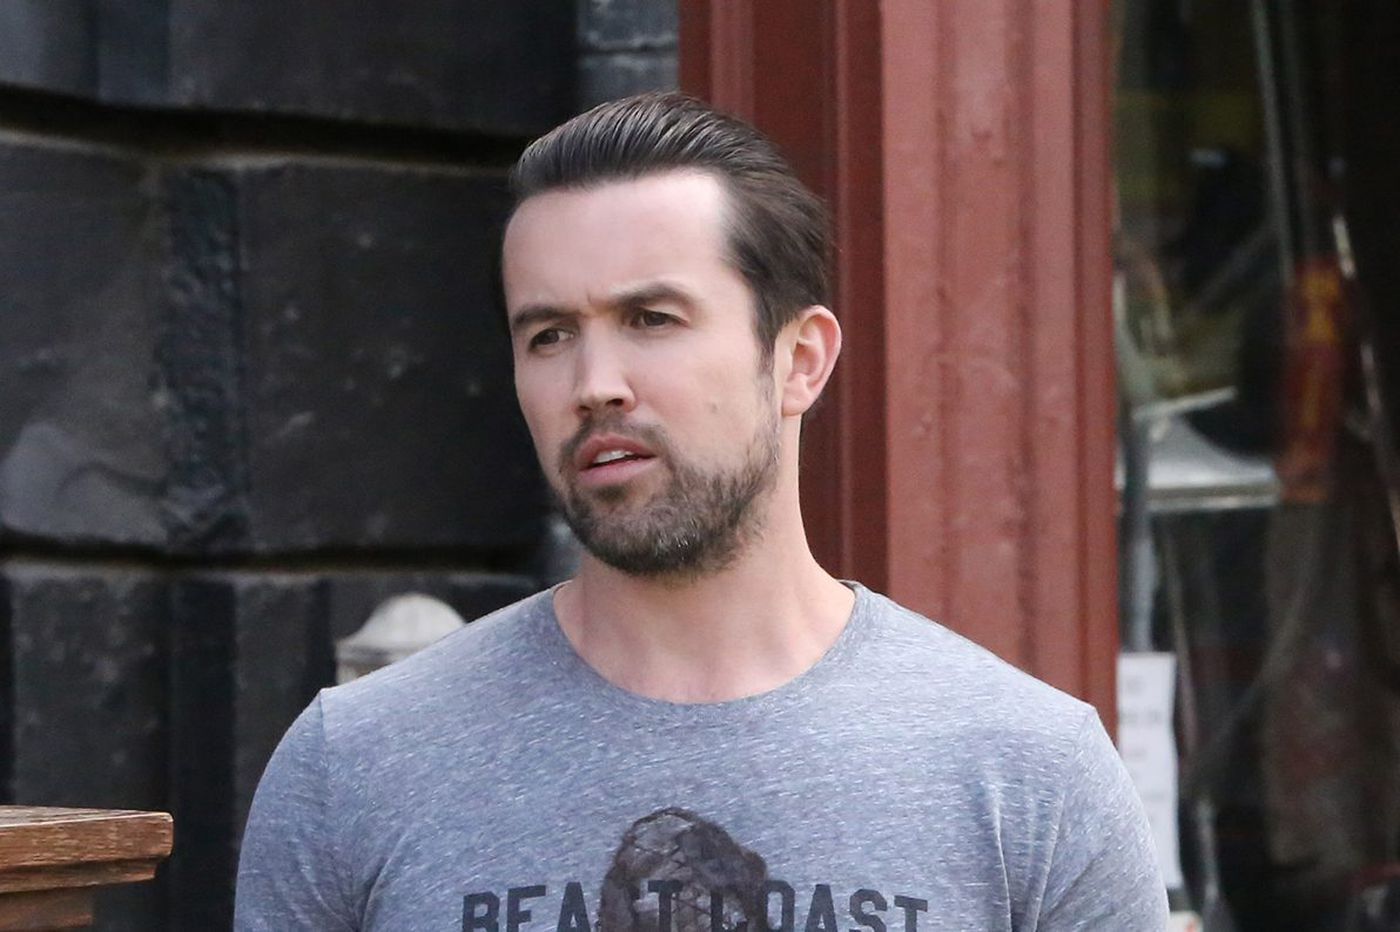 'It's Always Sunny in Philadelphia' star Rob McElhenney got killed off in 'Game of Thrones' season eight premi